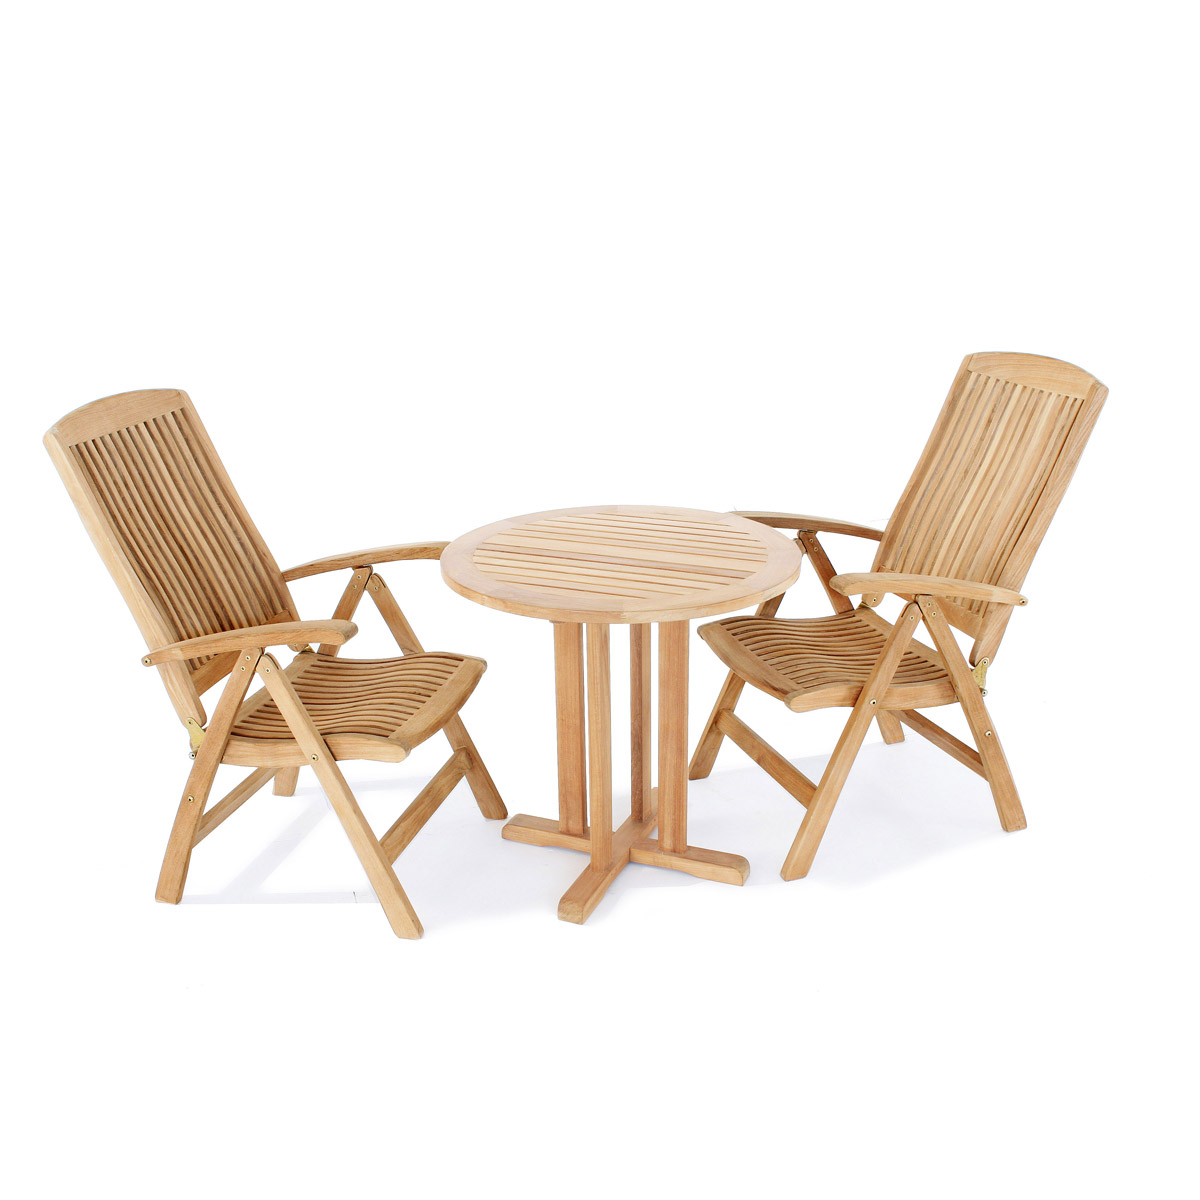 Teak bistro set westminster teak outdoor furniture for Teak outdoor furniture